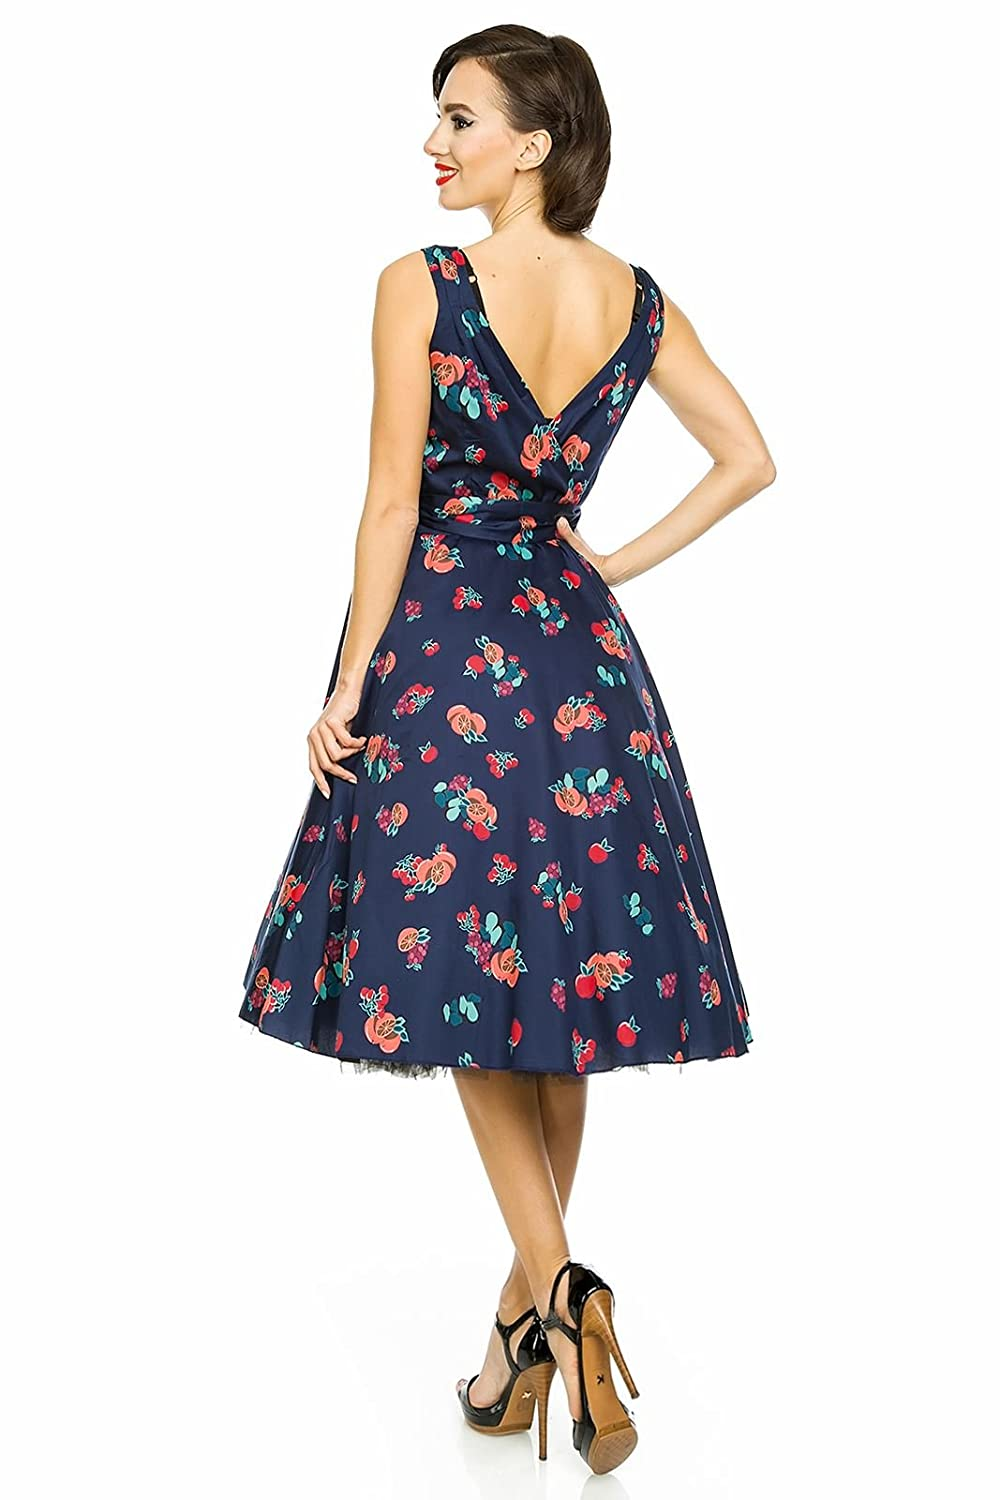 Looking Glam Ladies 1950s Mid Tie Retro Vintage Pin Up Swing Party Dress: Amazon.co.uk: Clothing